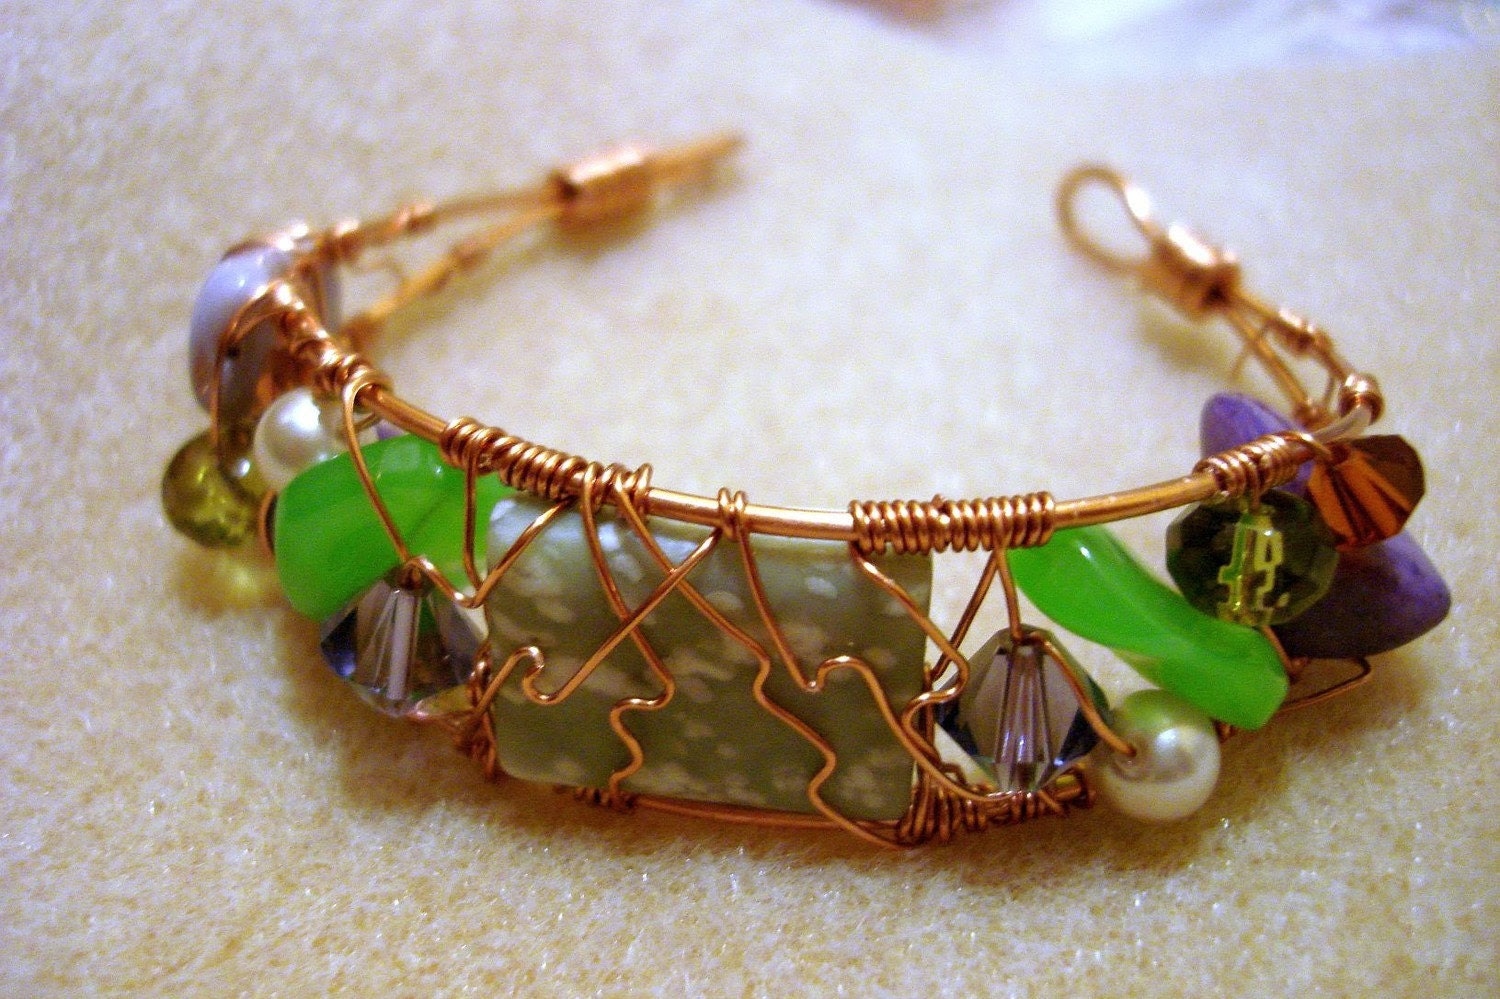 mixed media wire bracelet